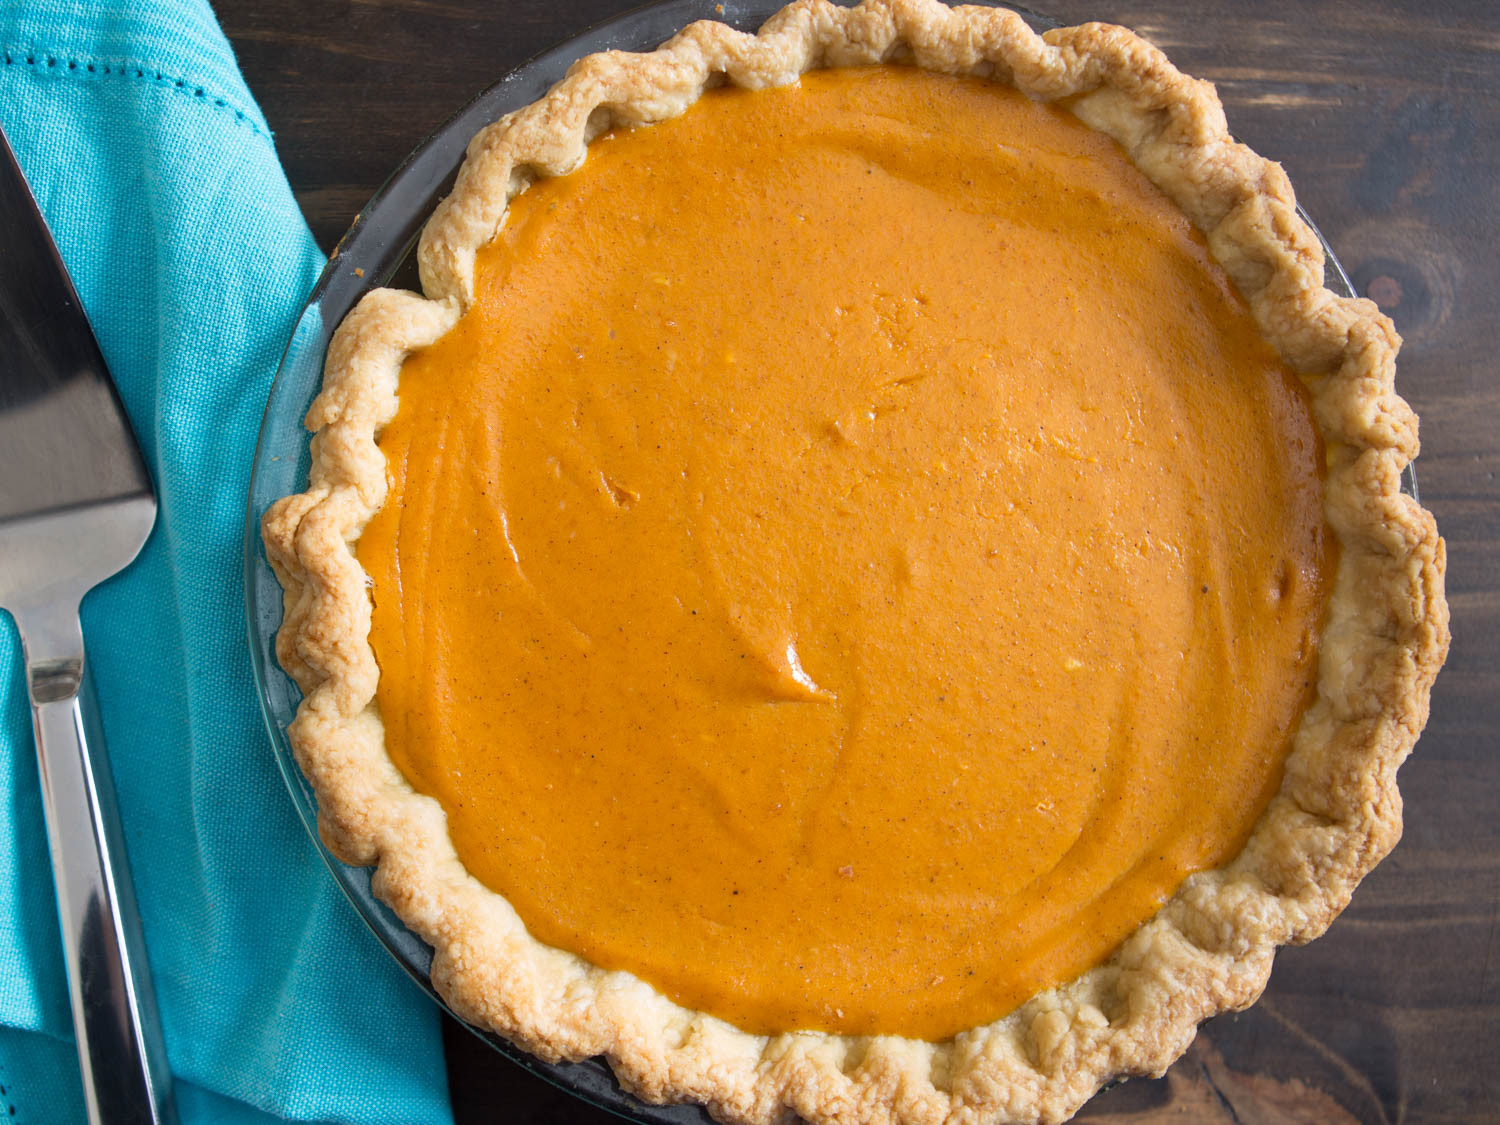 Pie Recipes For Thanksgiving  19 Delicious Thanksgiving Pie Recipes You ll Wish You Had